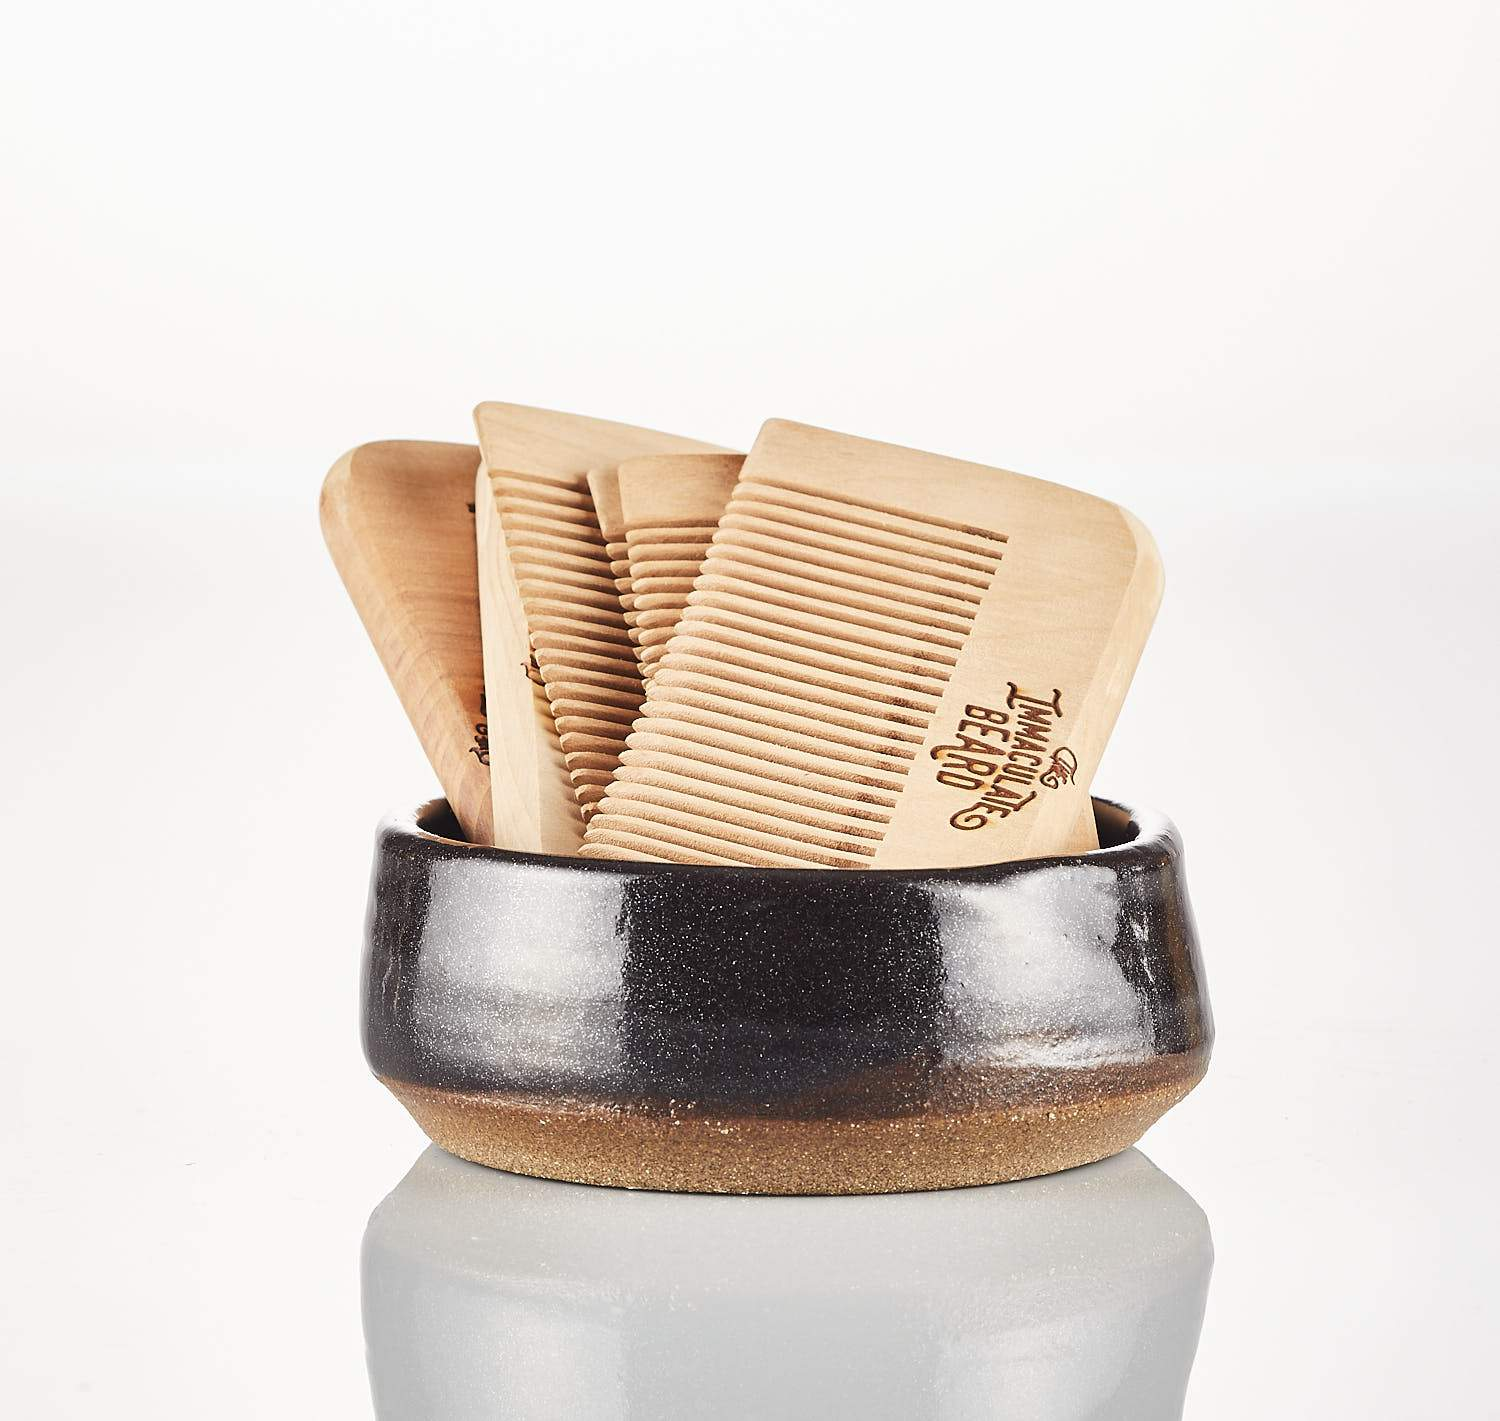 Wooden Beard Comb - Heart of the Home PA